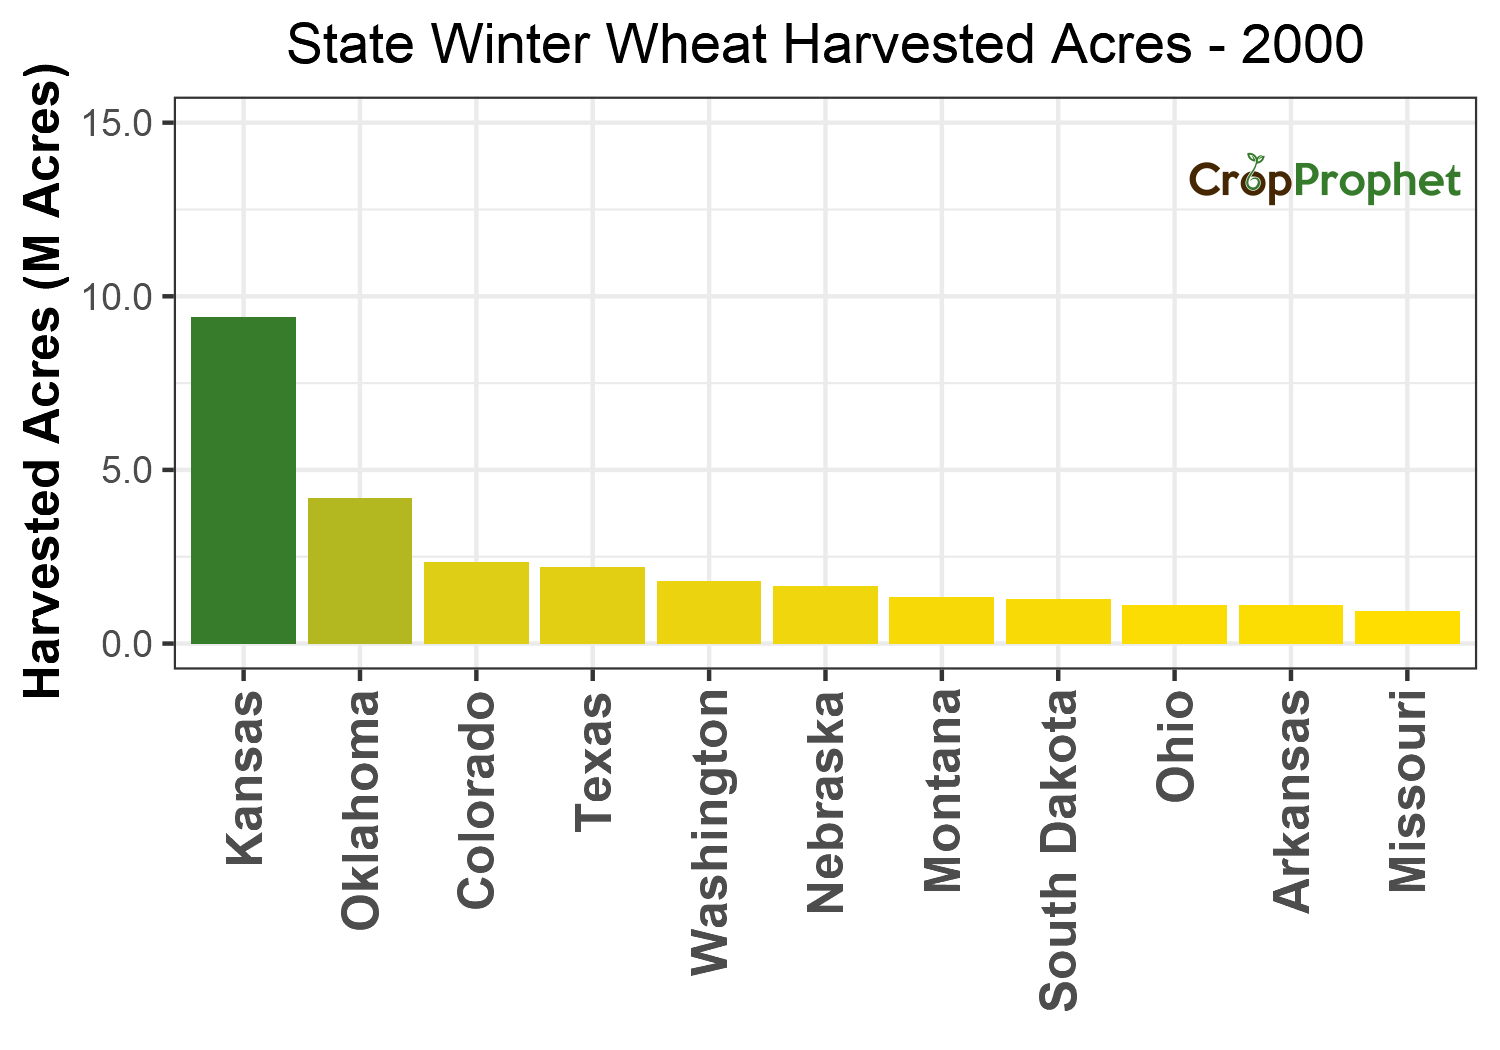 Winter wheat Harvested Acres by State - 2000 Rankings